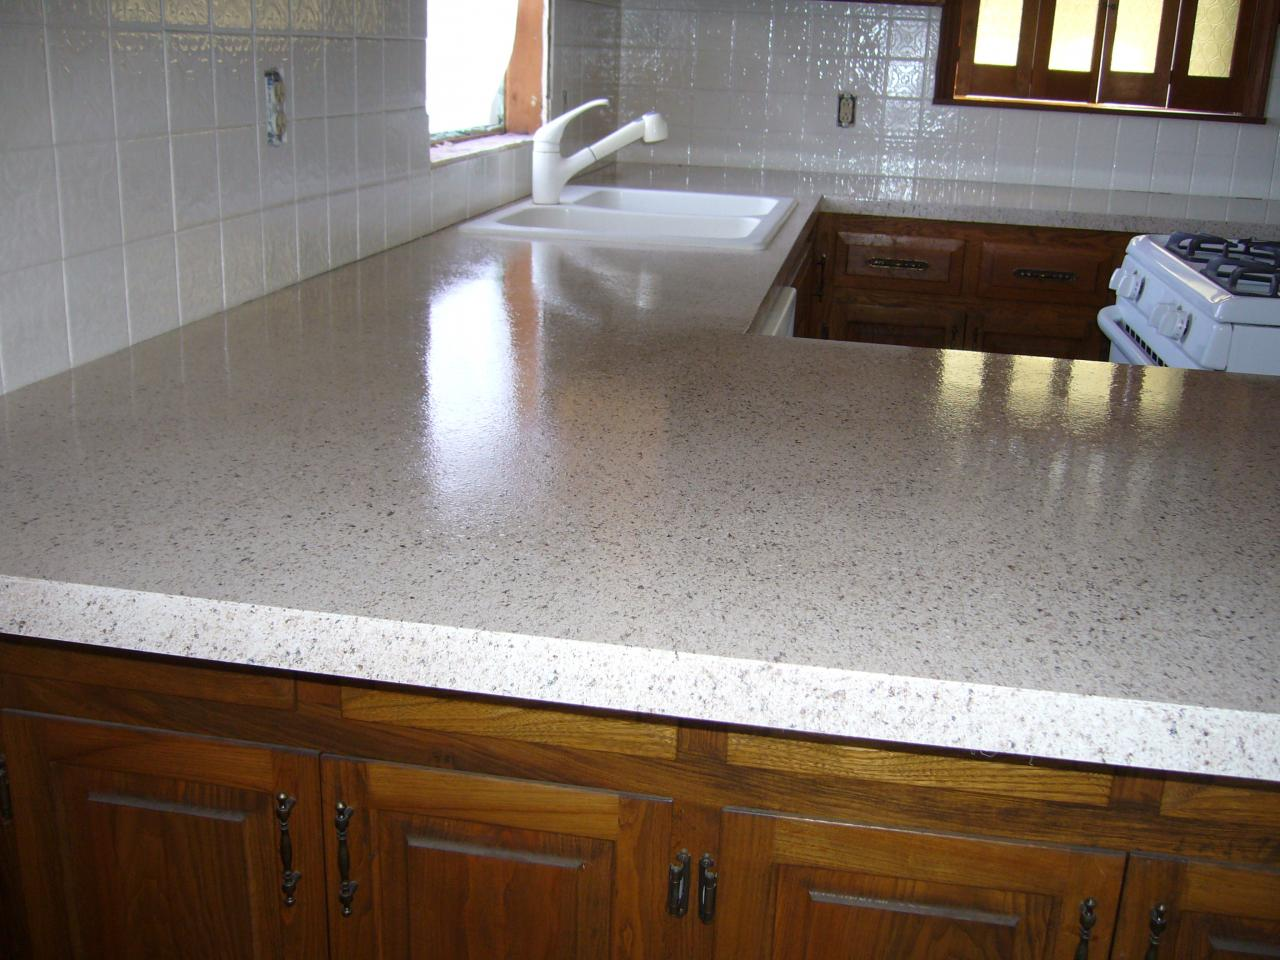 New Cliff Finish With Semigloss Topcoat On The Countertop And The Tile Is  All White